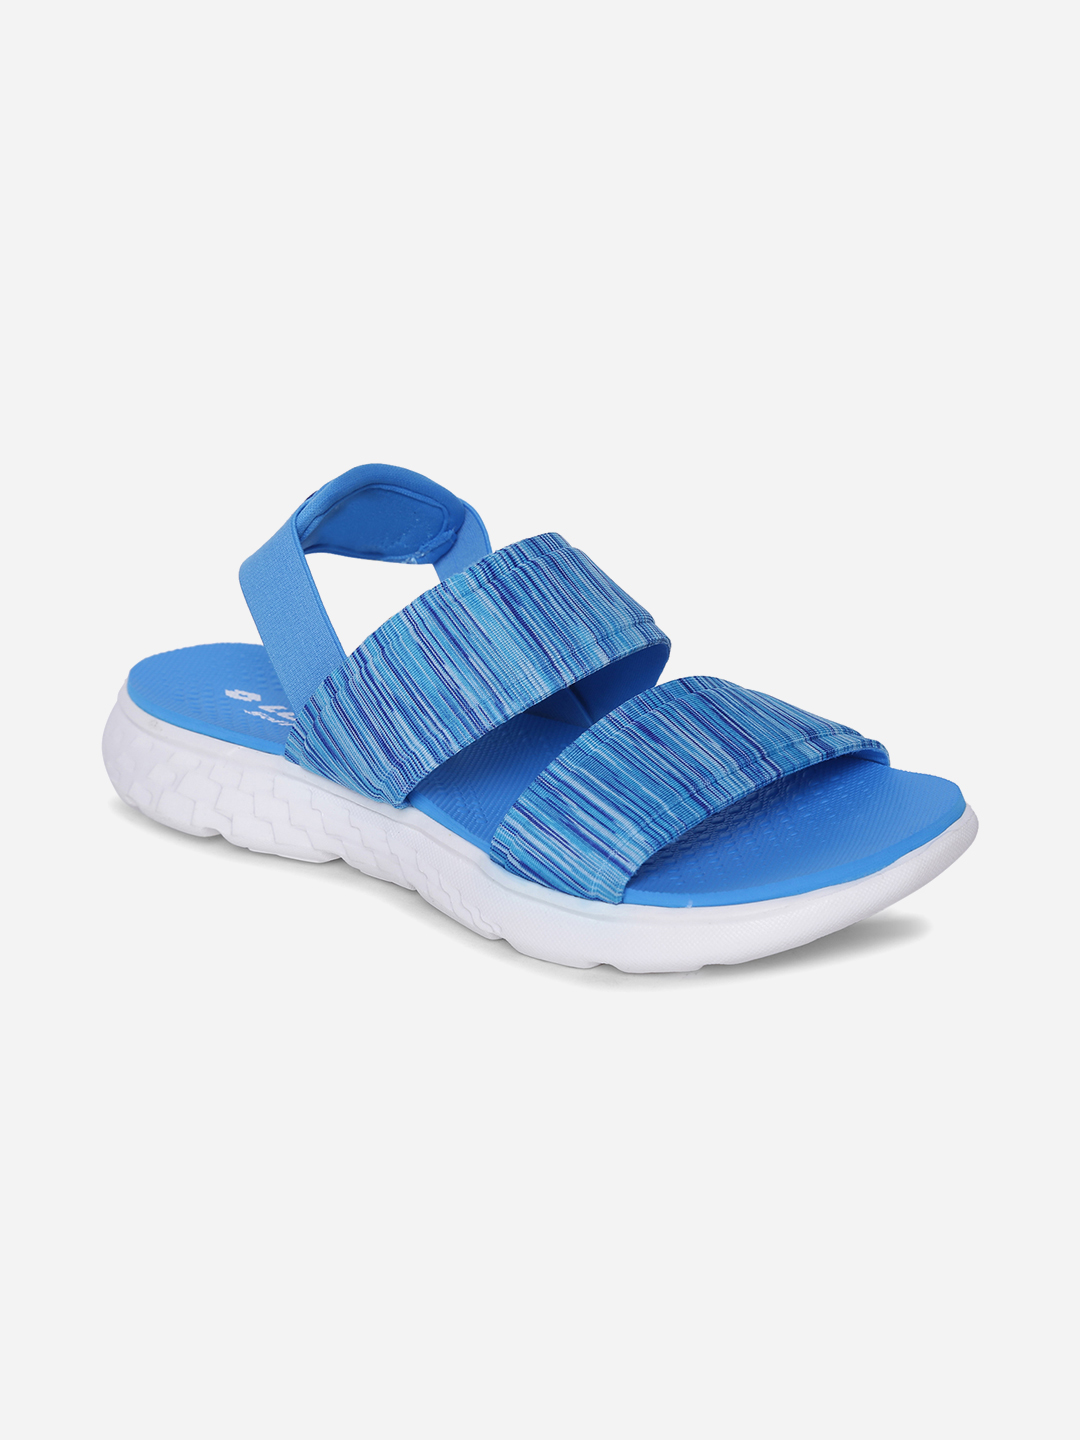 Lotto | Lotto Women's Leone Blue/ Teal Slippers